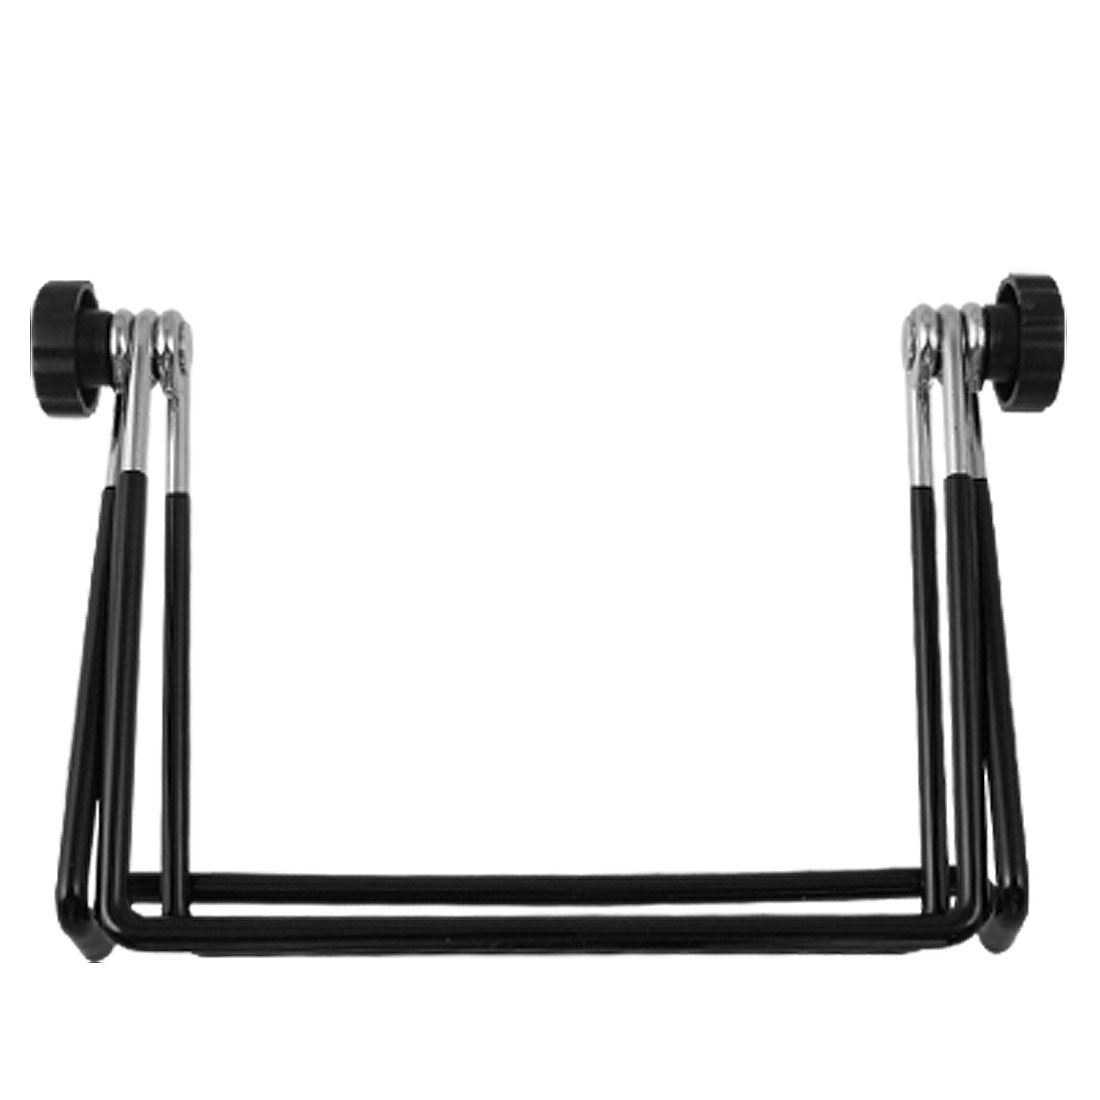 Metal Support Stand Dock Holder Mount for Apple iPad